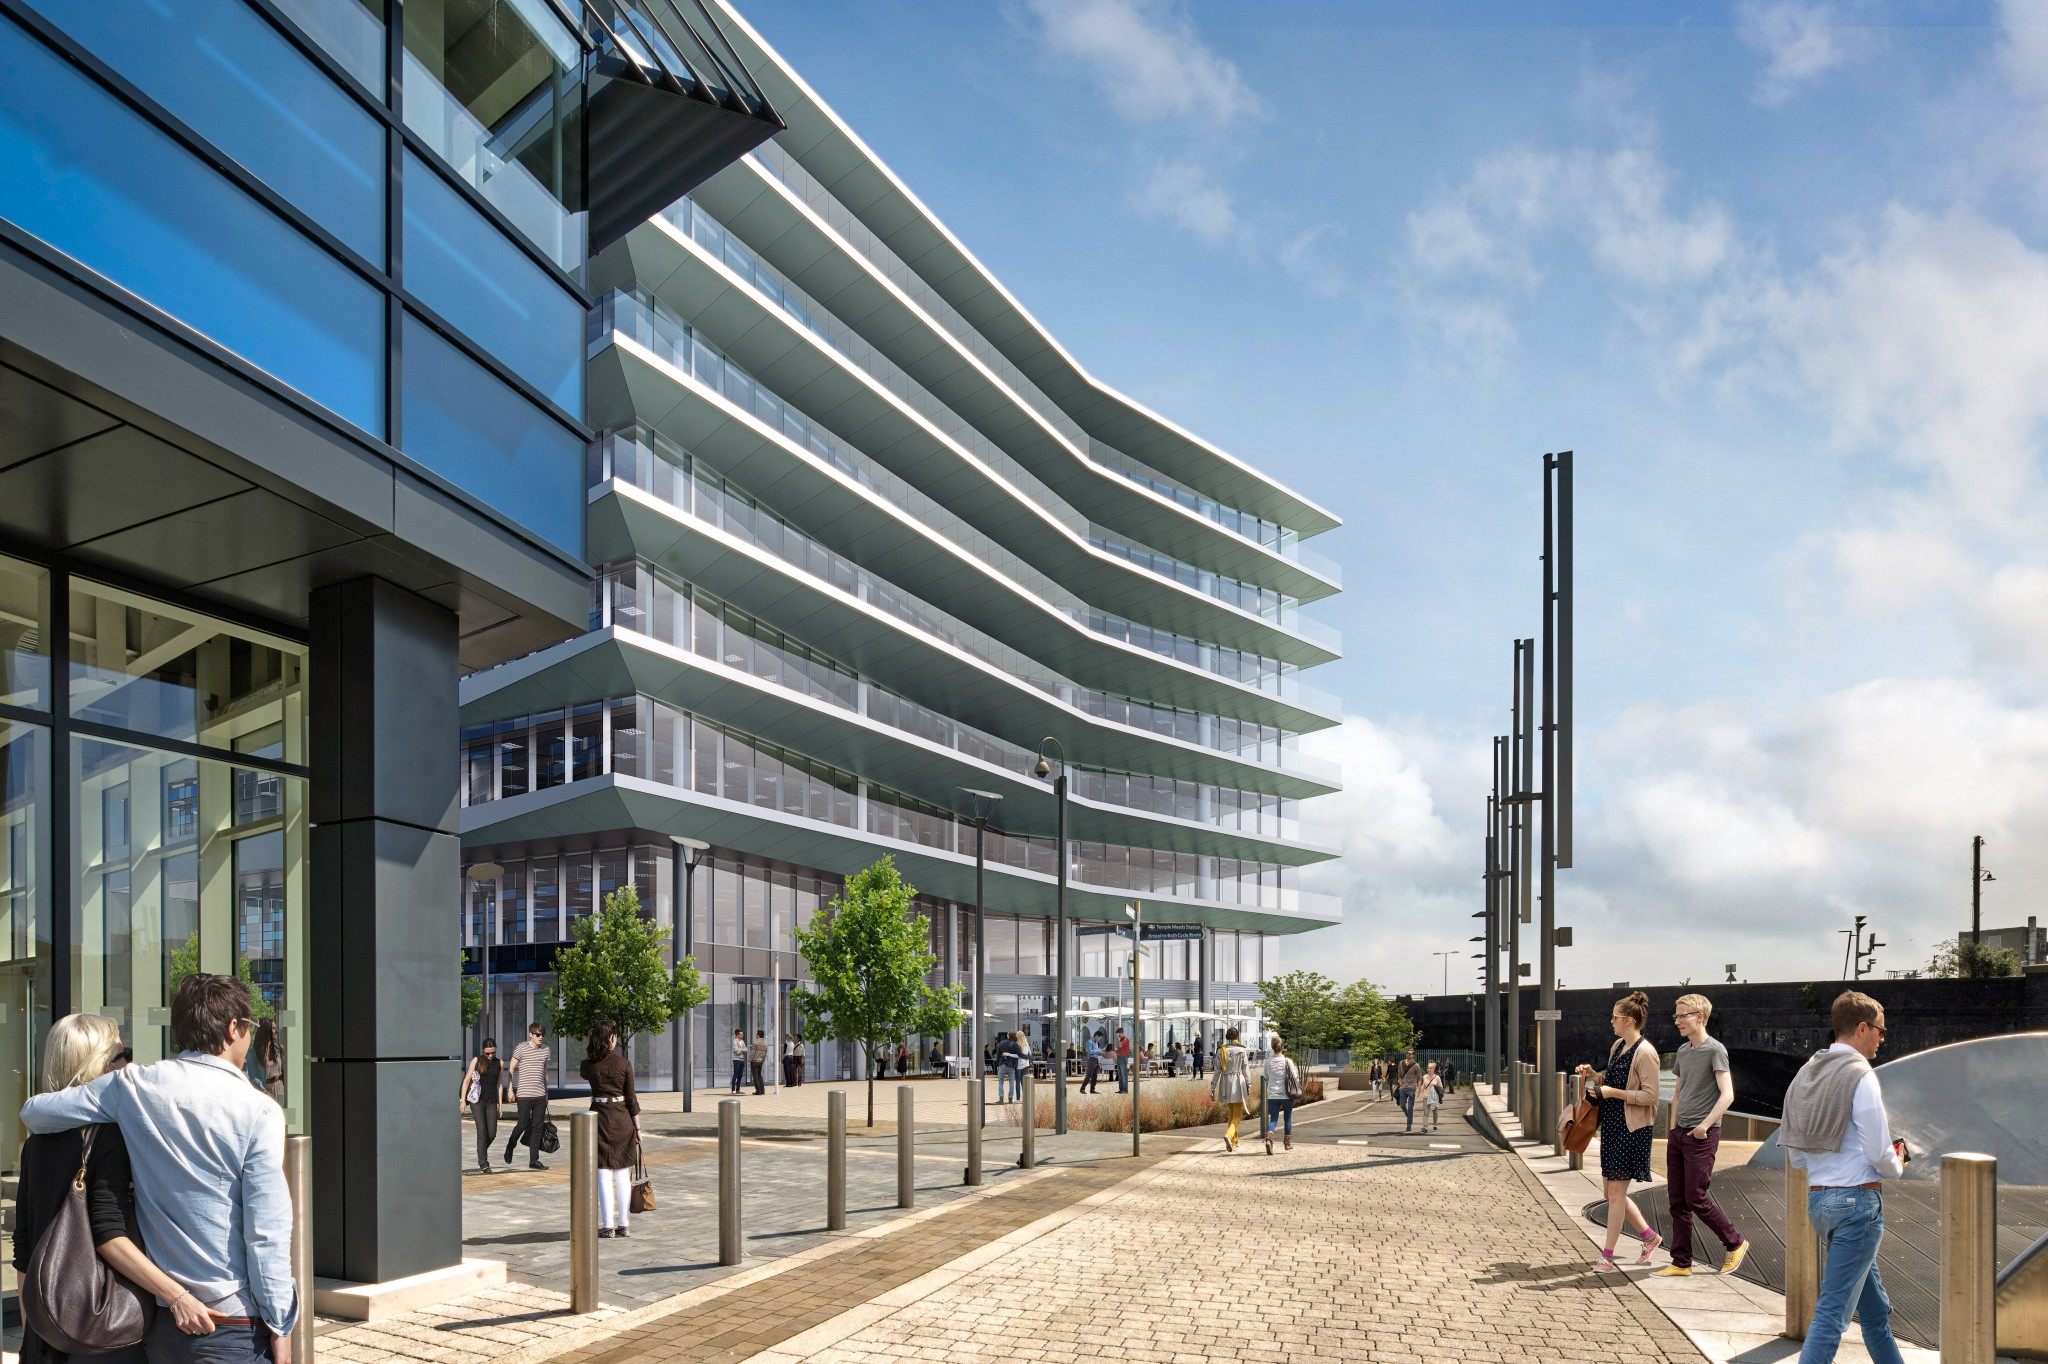 3 Glass Wharf, Bristol - Darling Associates